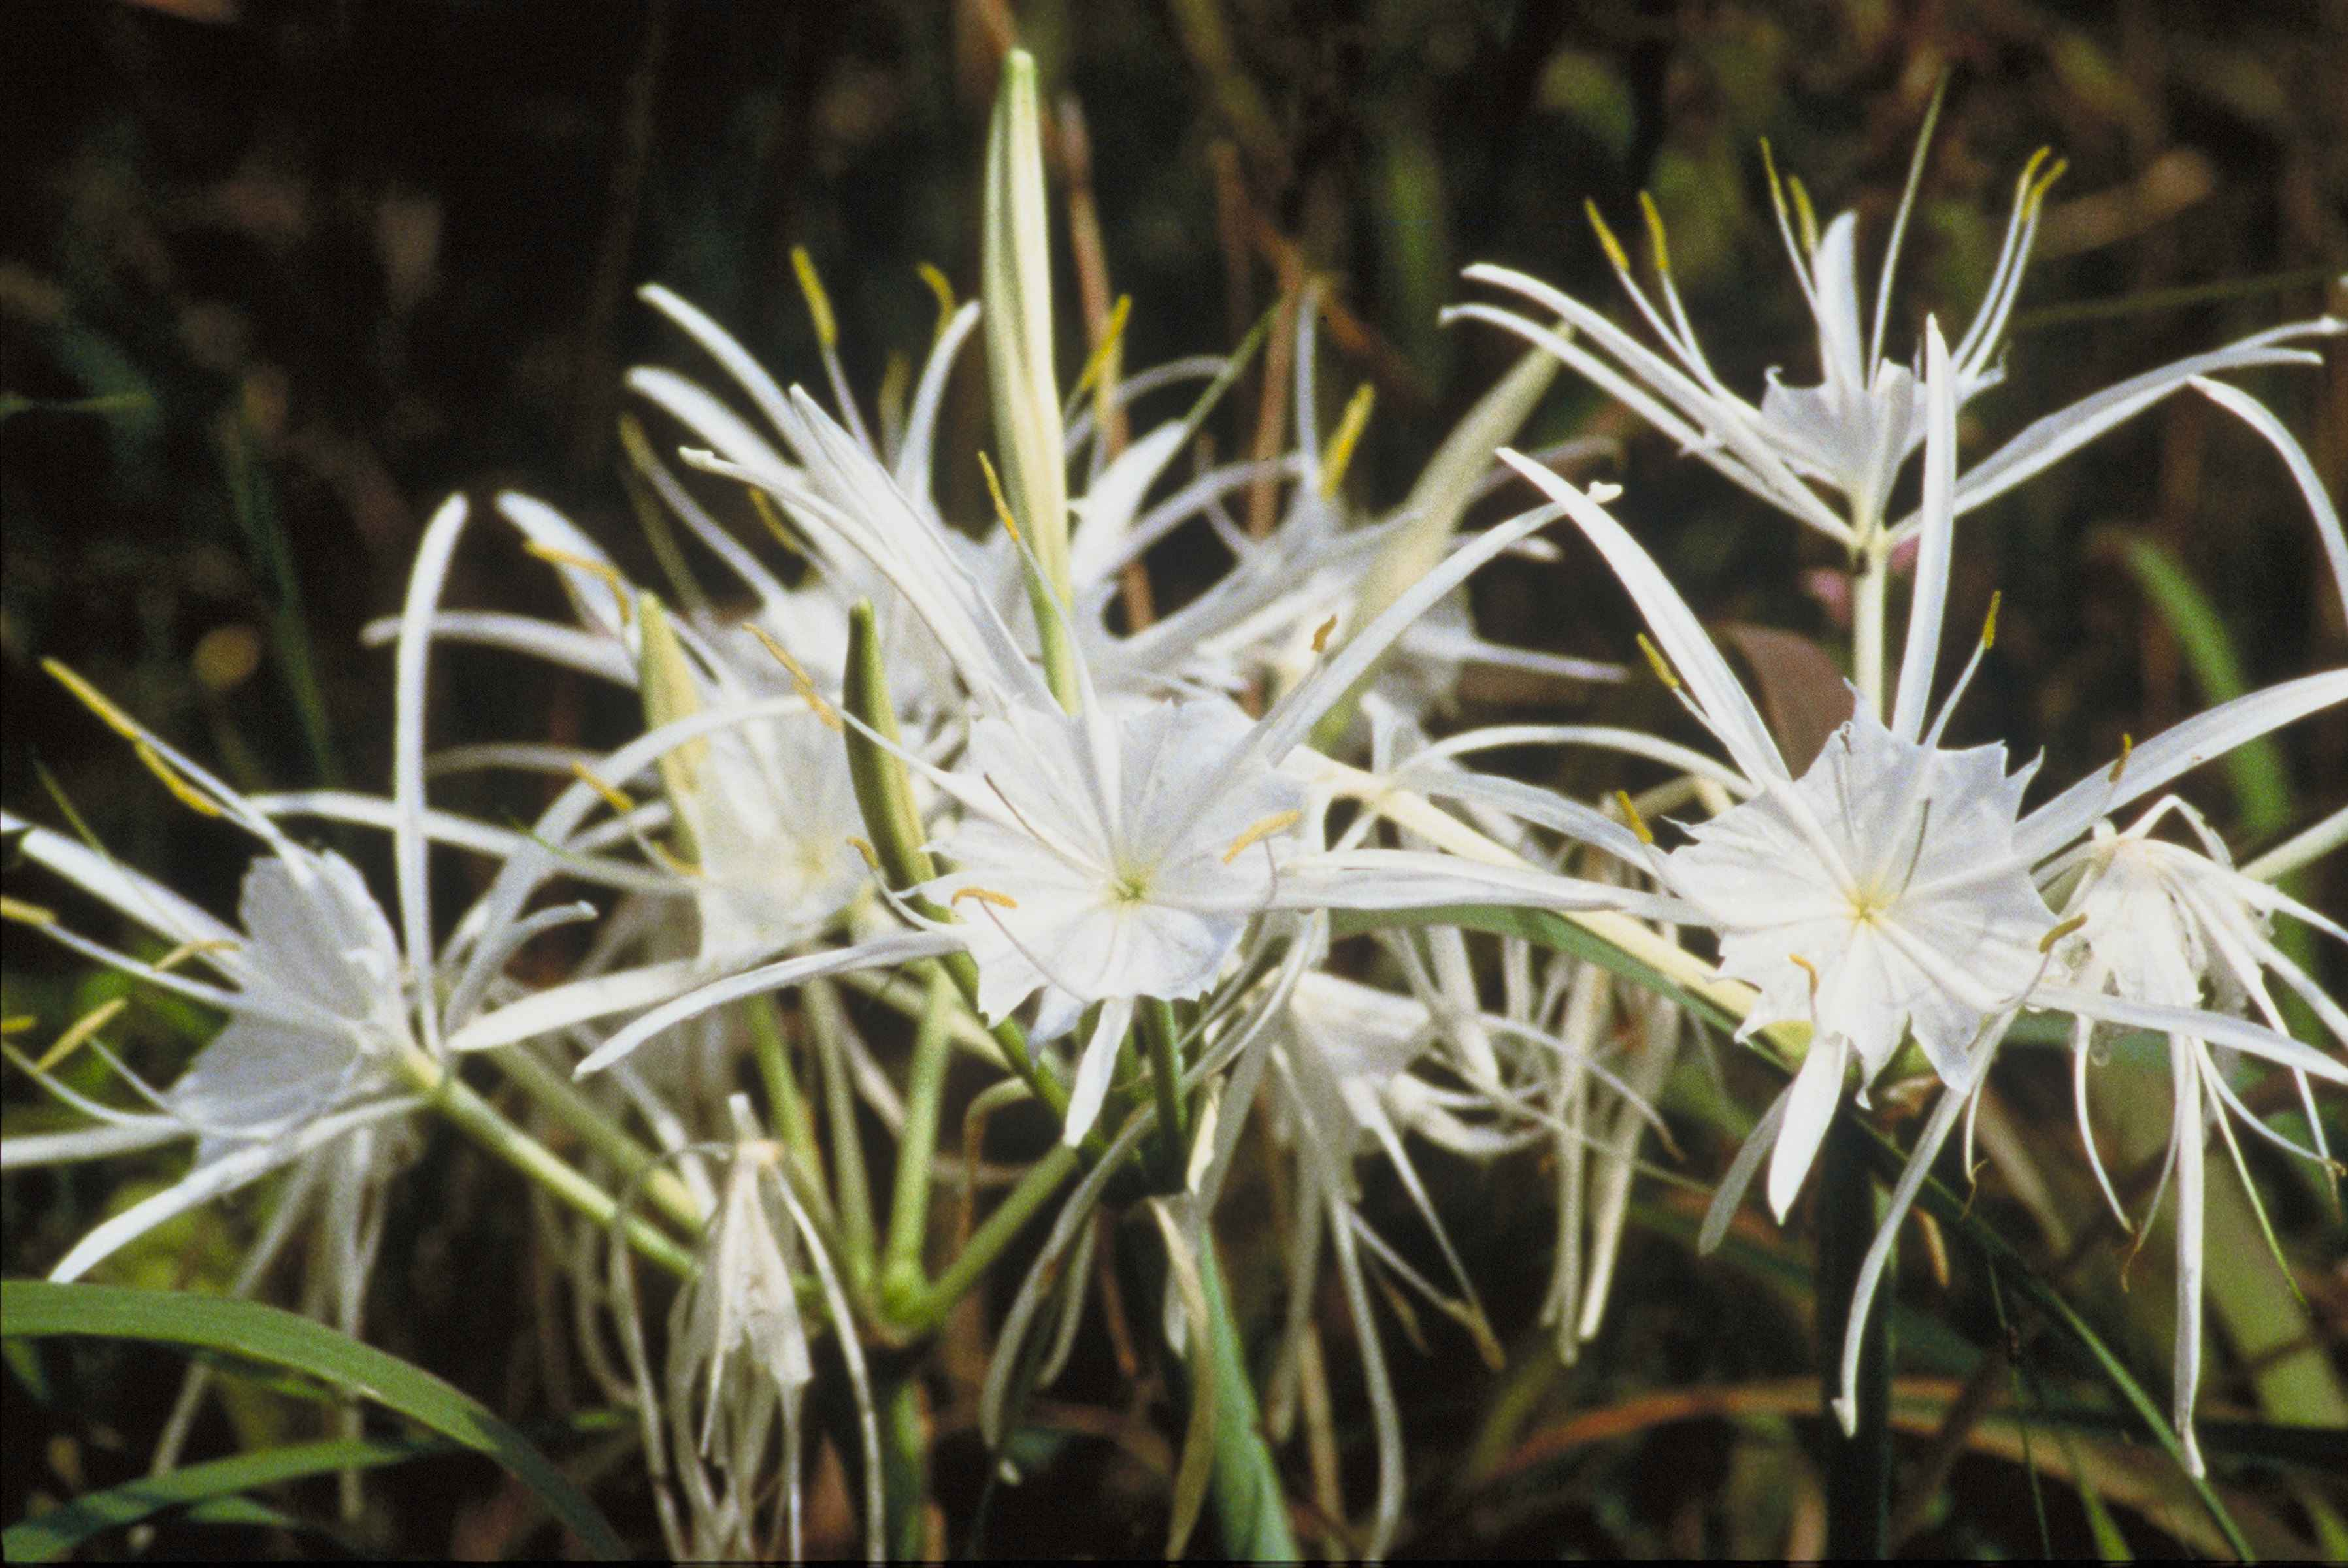 Filespider lilies plants higanbana with white flowersg filespider lilies plants higanbana with white flowersg mightylinksfo Choice Image